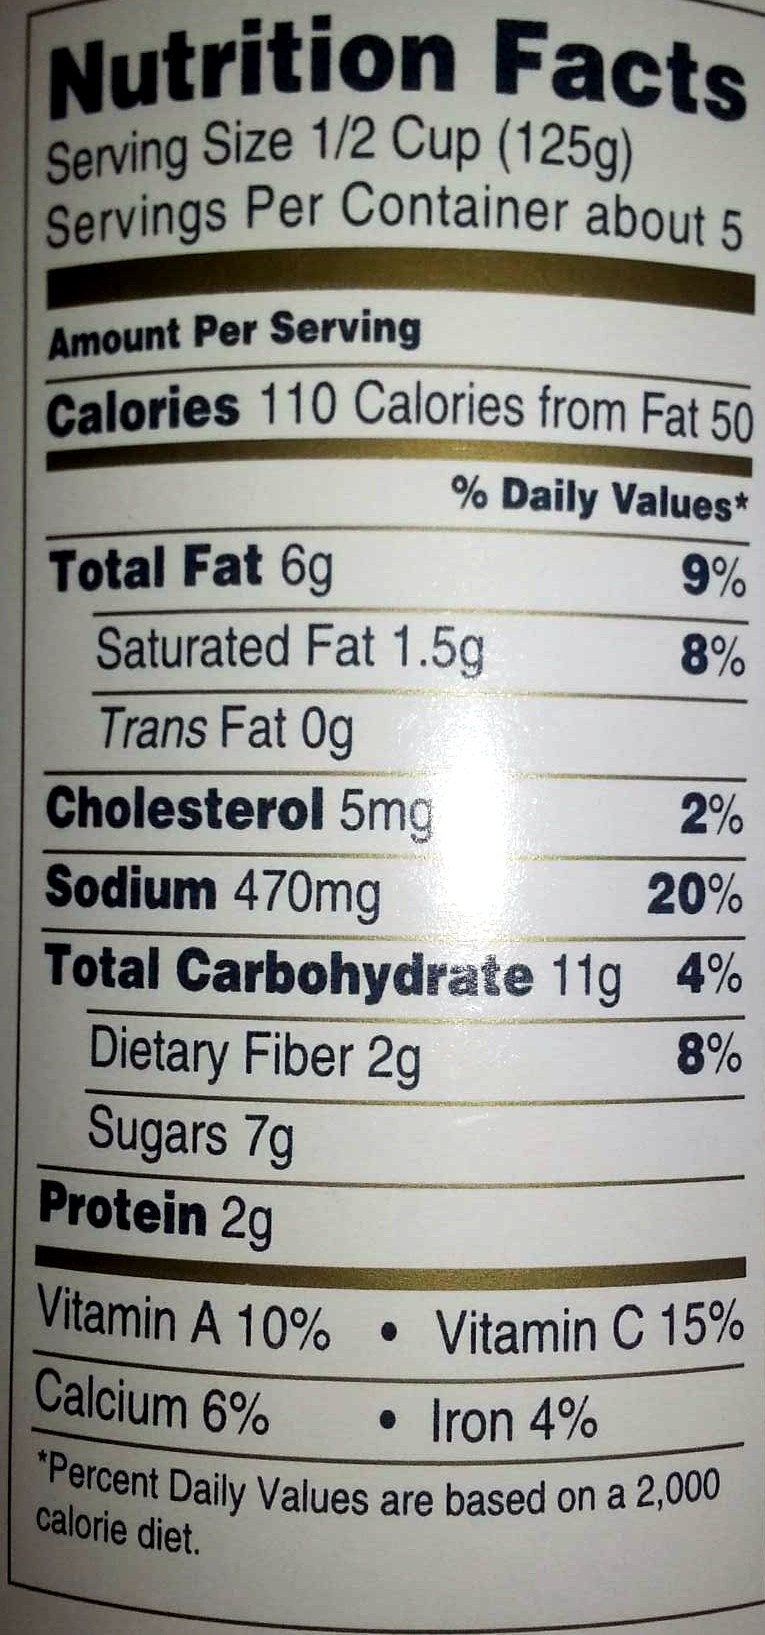 Bolognese Authentic Italian Pasta Sauce - Nutrition facts